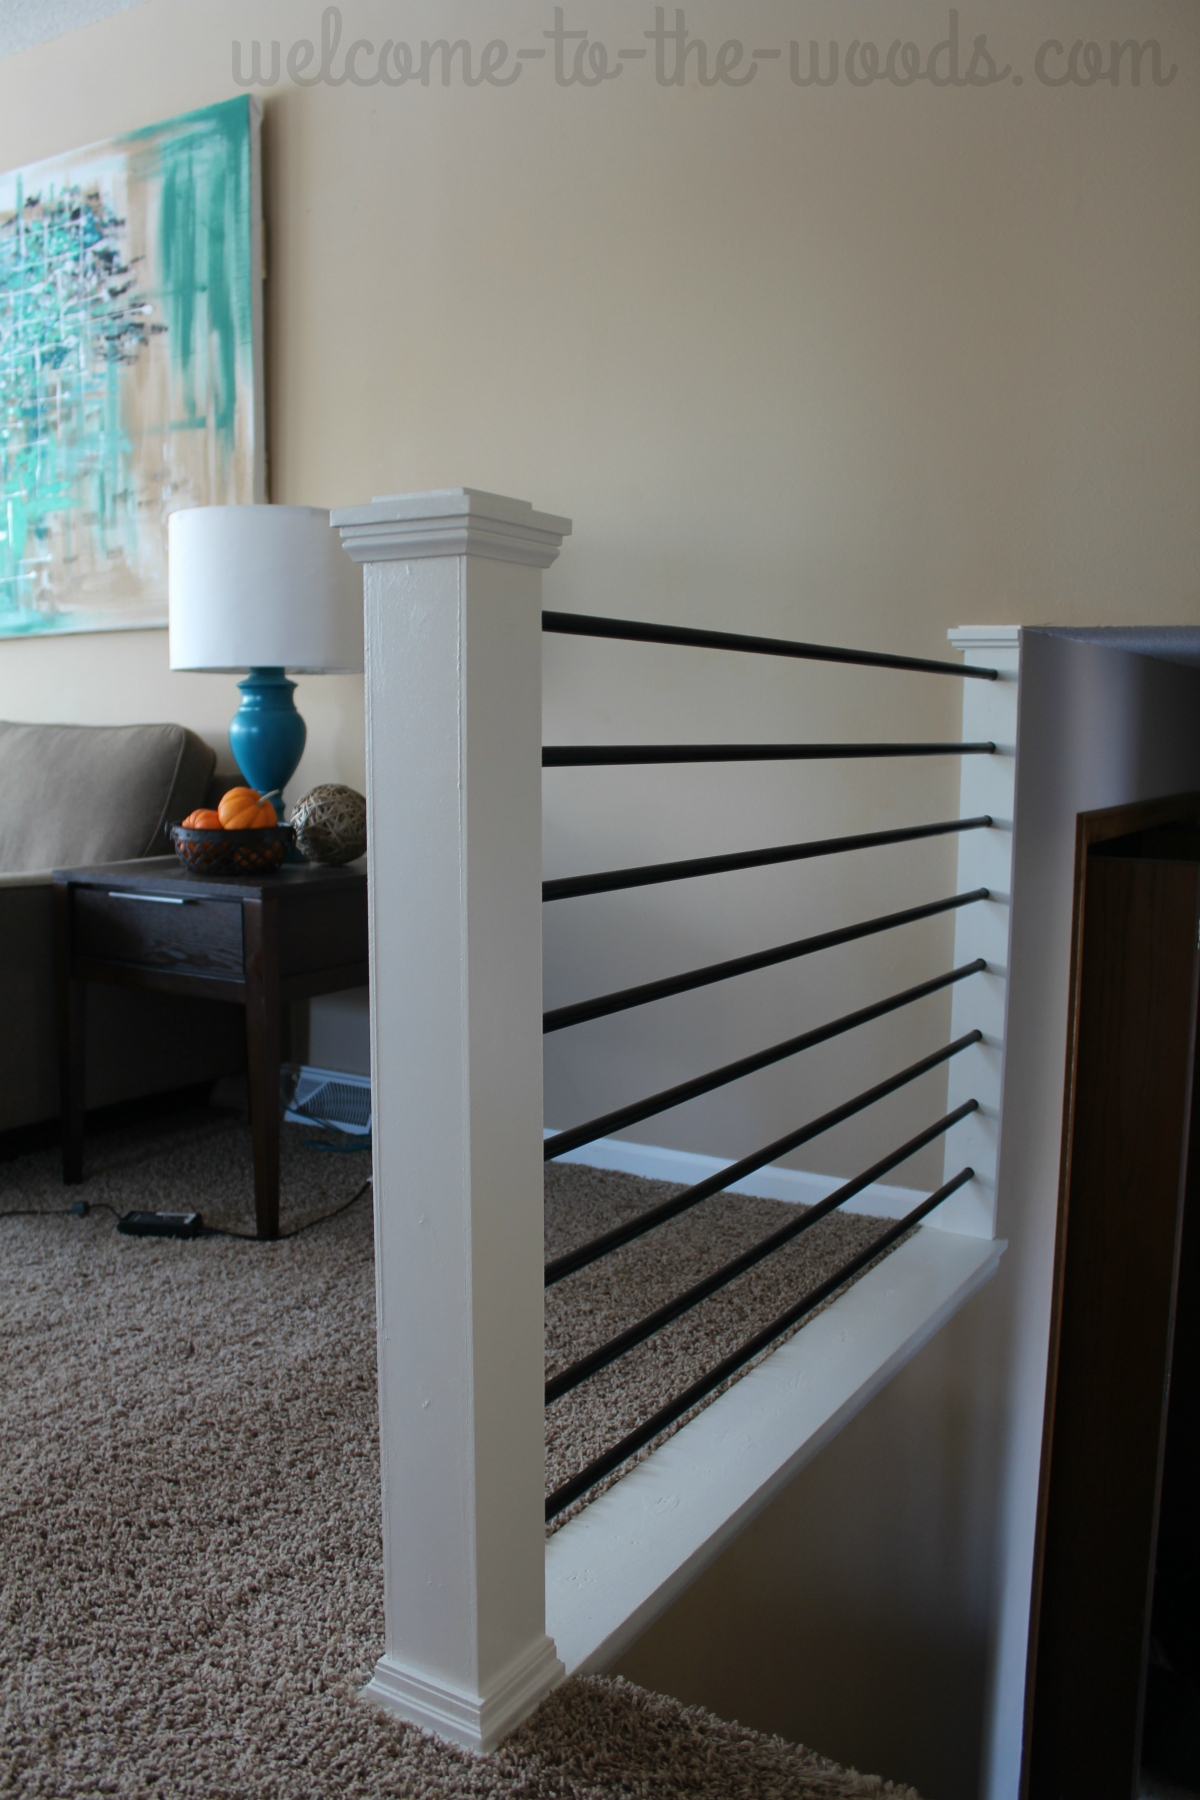 Stair Railing Diy Makeover | Modern Horizontal Stair Railing | Really Thin | Interior | Cast Iron | Cable | Elegant